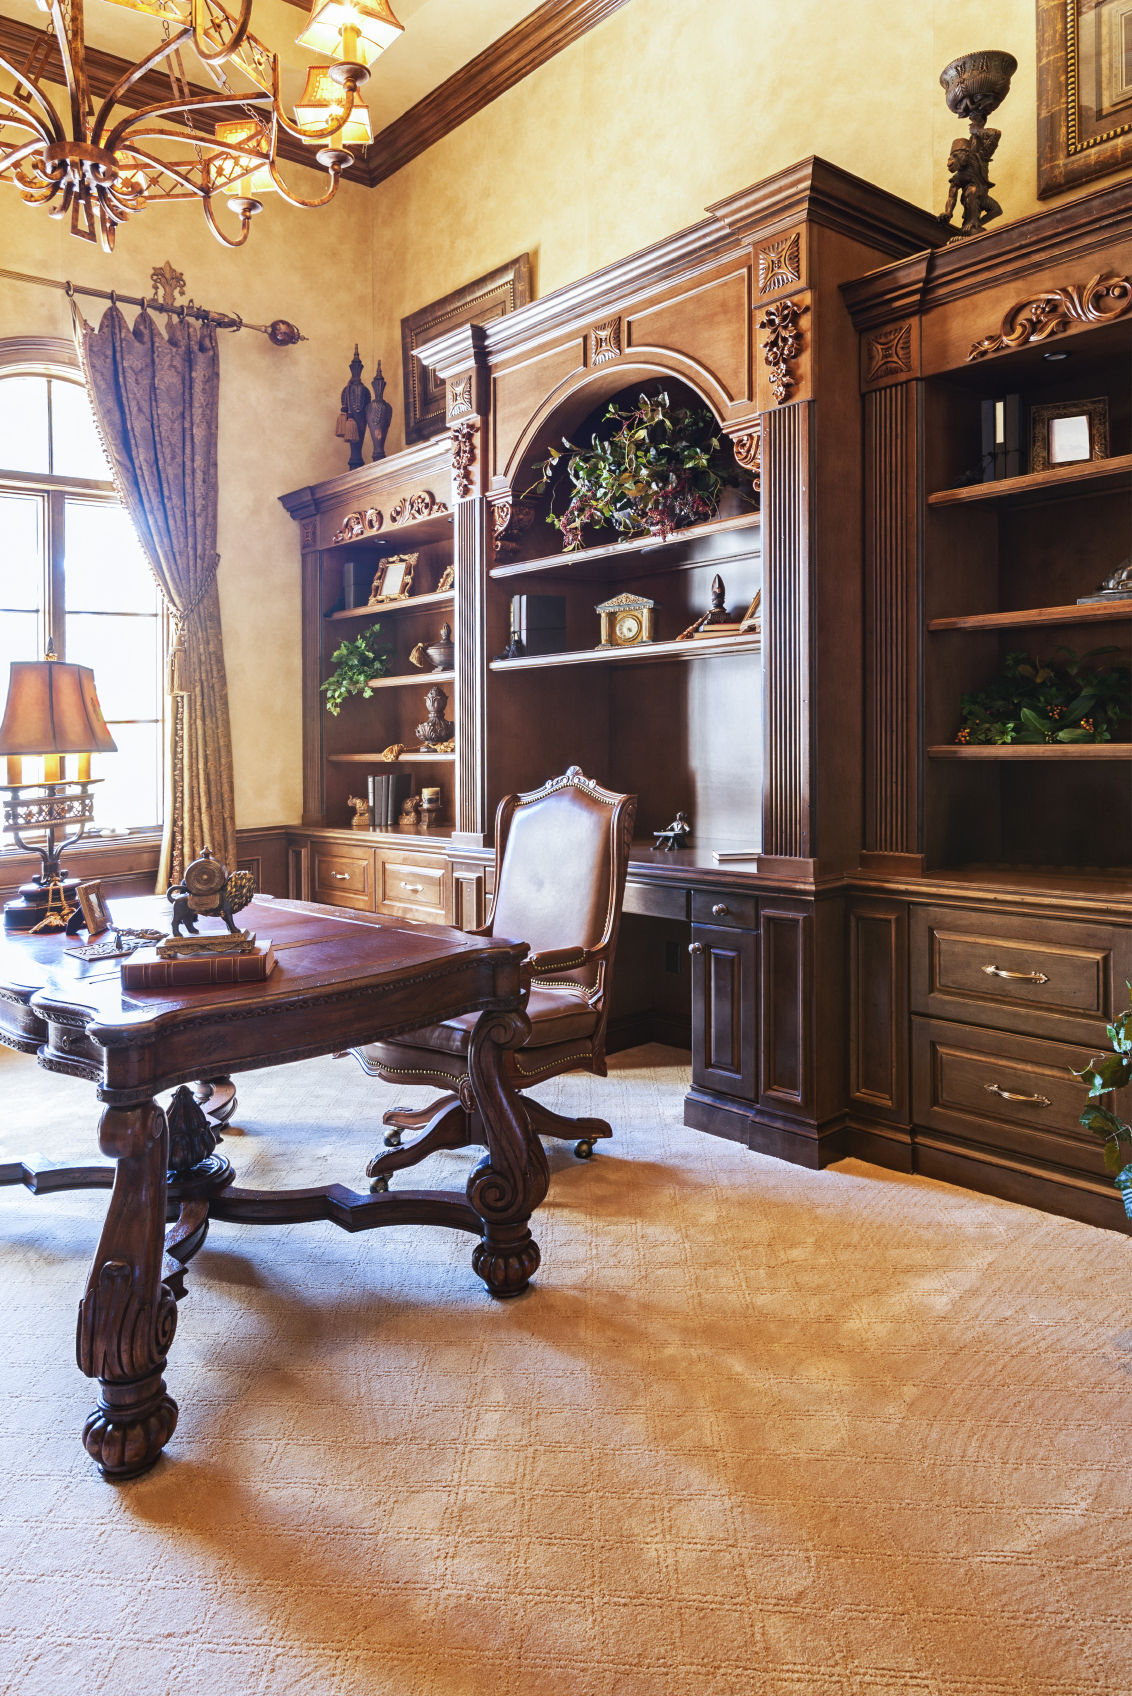 This home office is a truly ornate, traditional affair, with carved wood, leather topped desk standing at center below a massive, wall sized rich wood shelving set. Chandelier, array of art pieces, and even etched carpeting add detail.